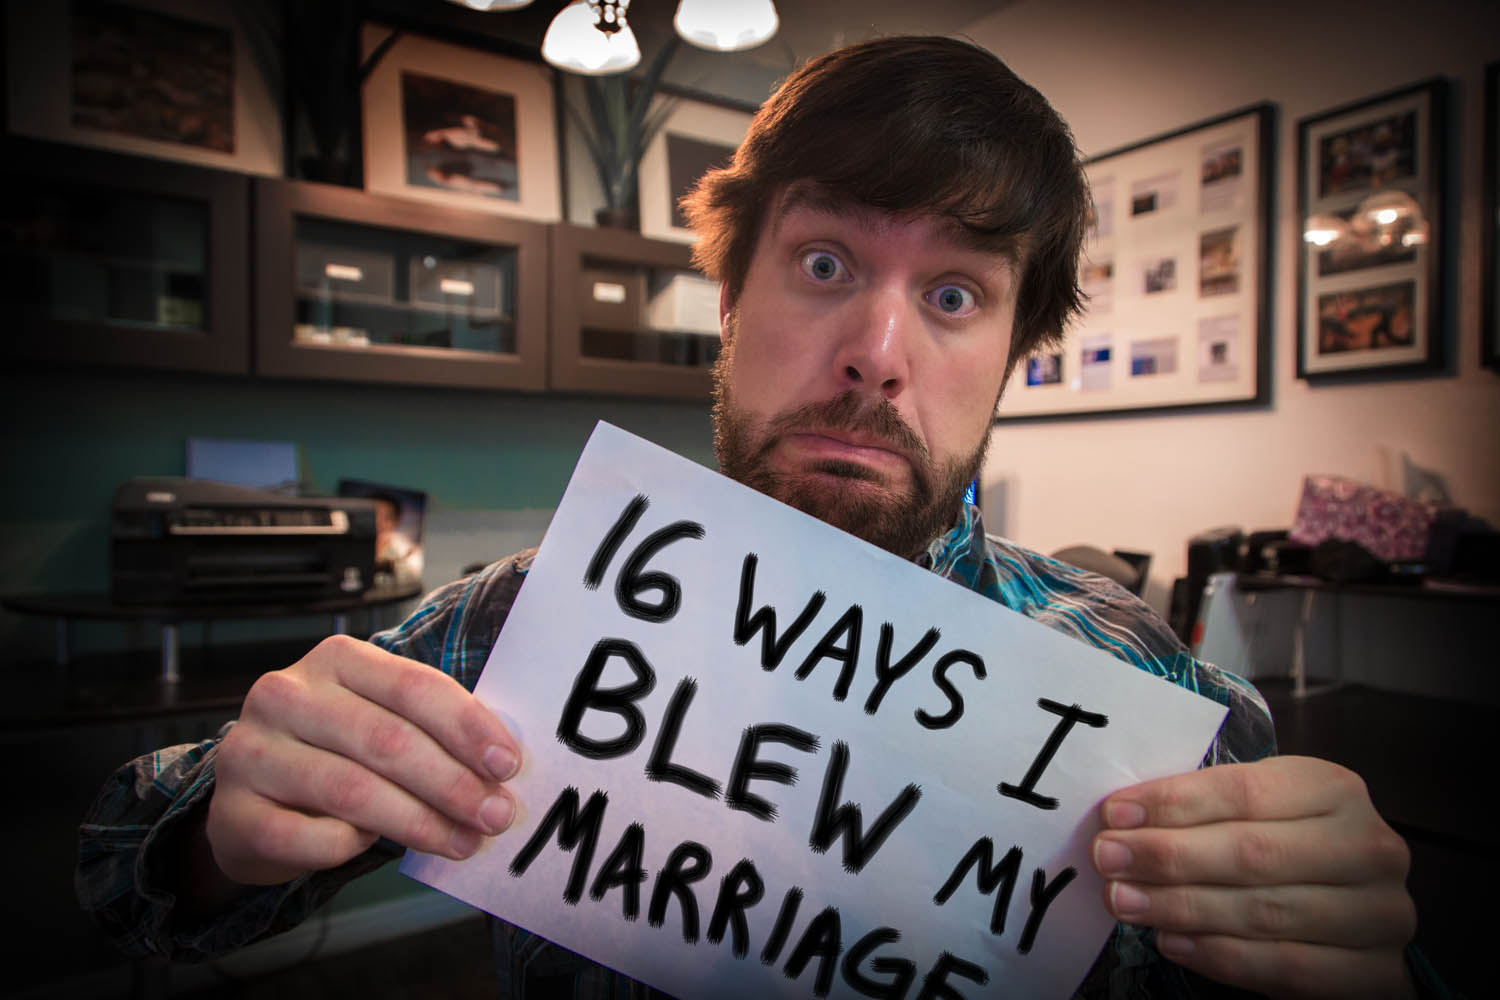 16 Ways Blew My Marriage: Cute and a good reminder. He's got some good insig